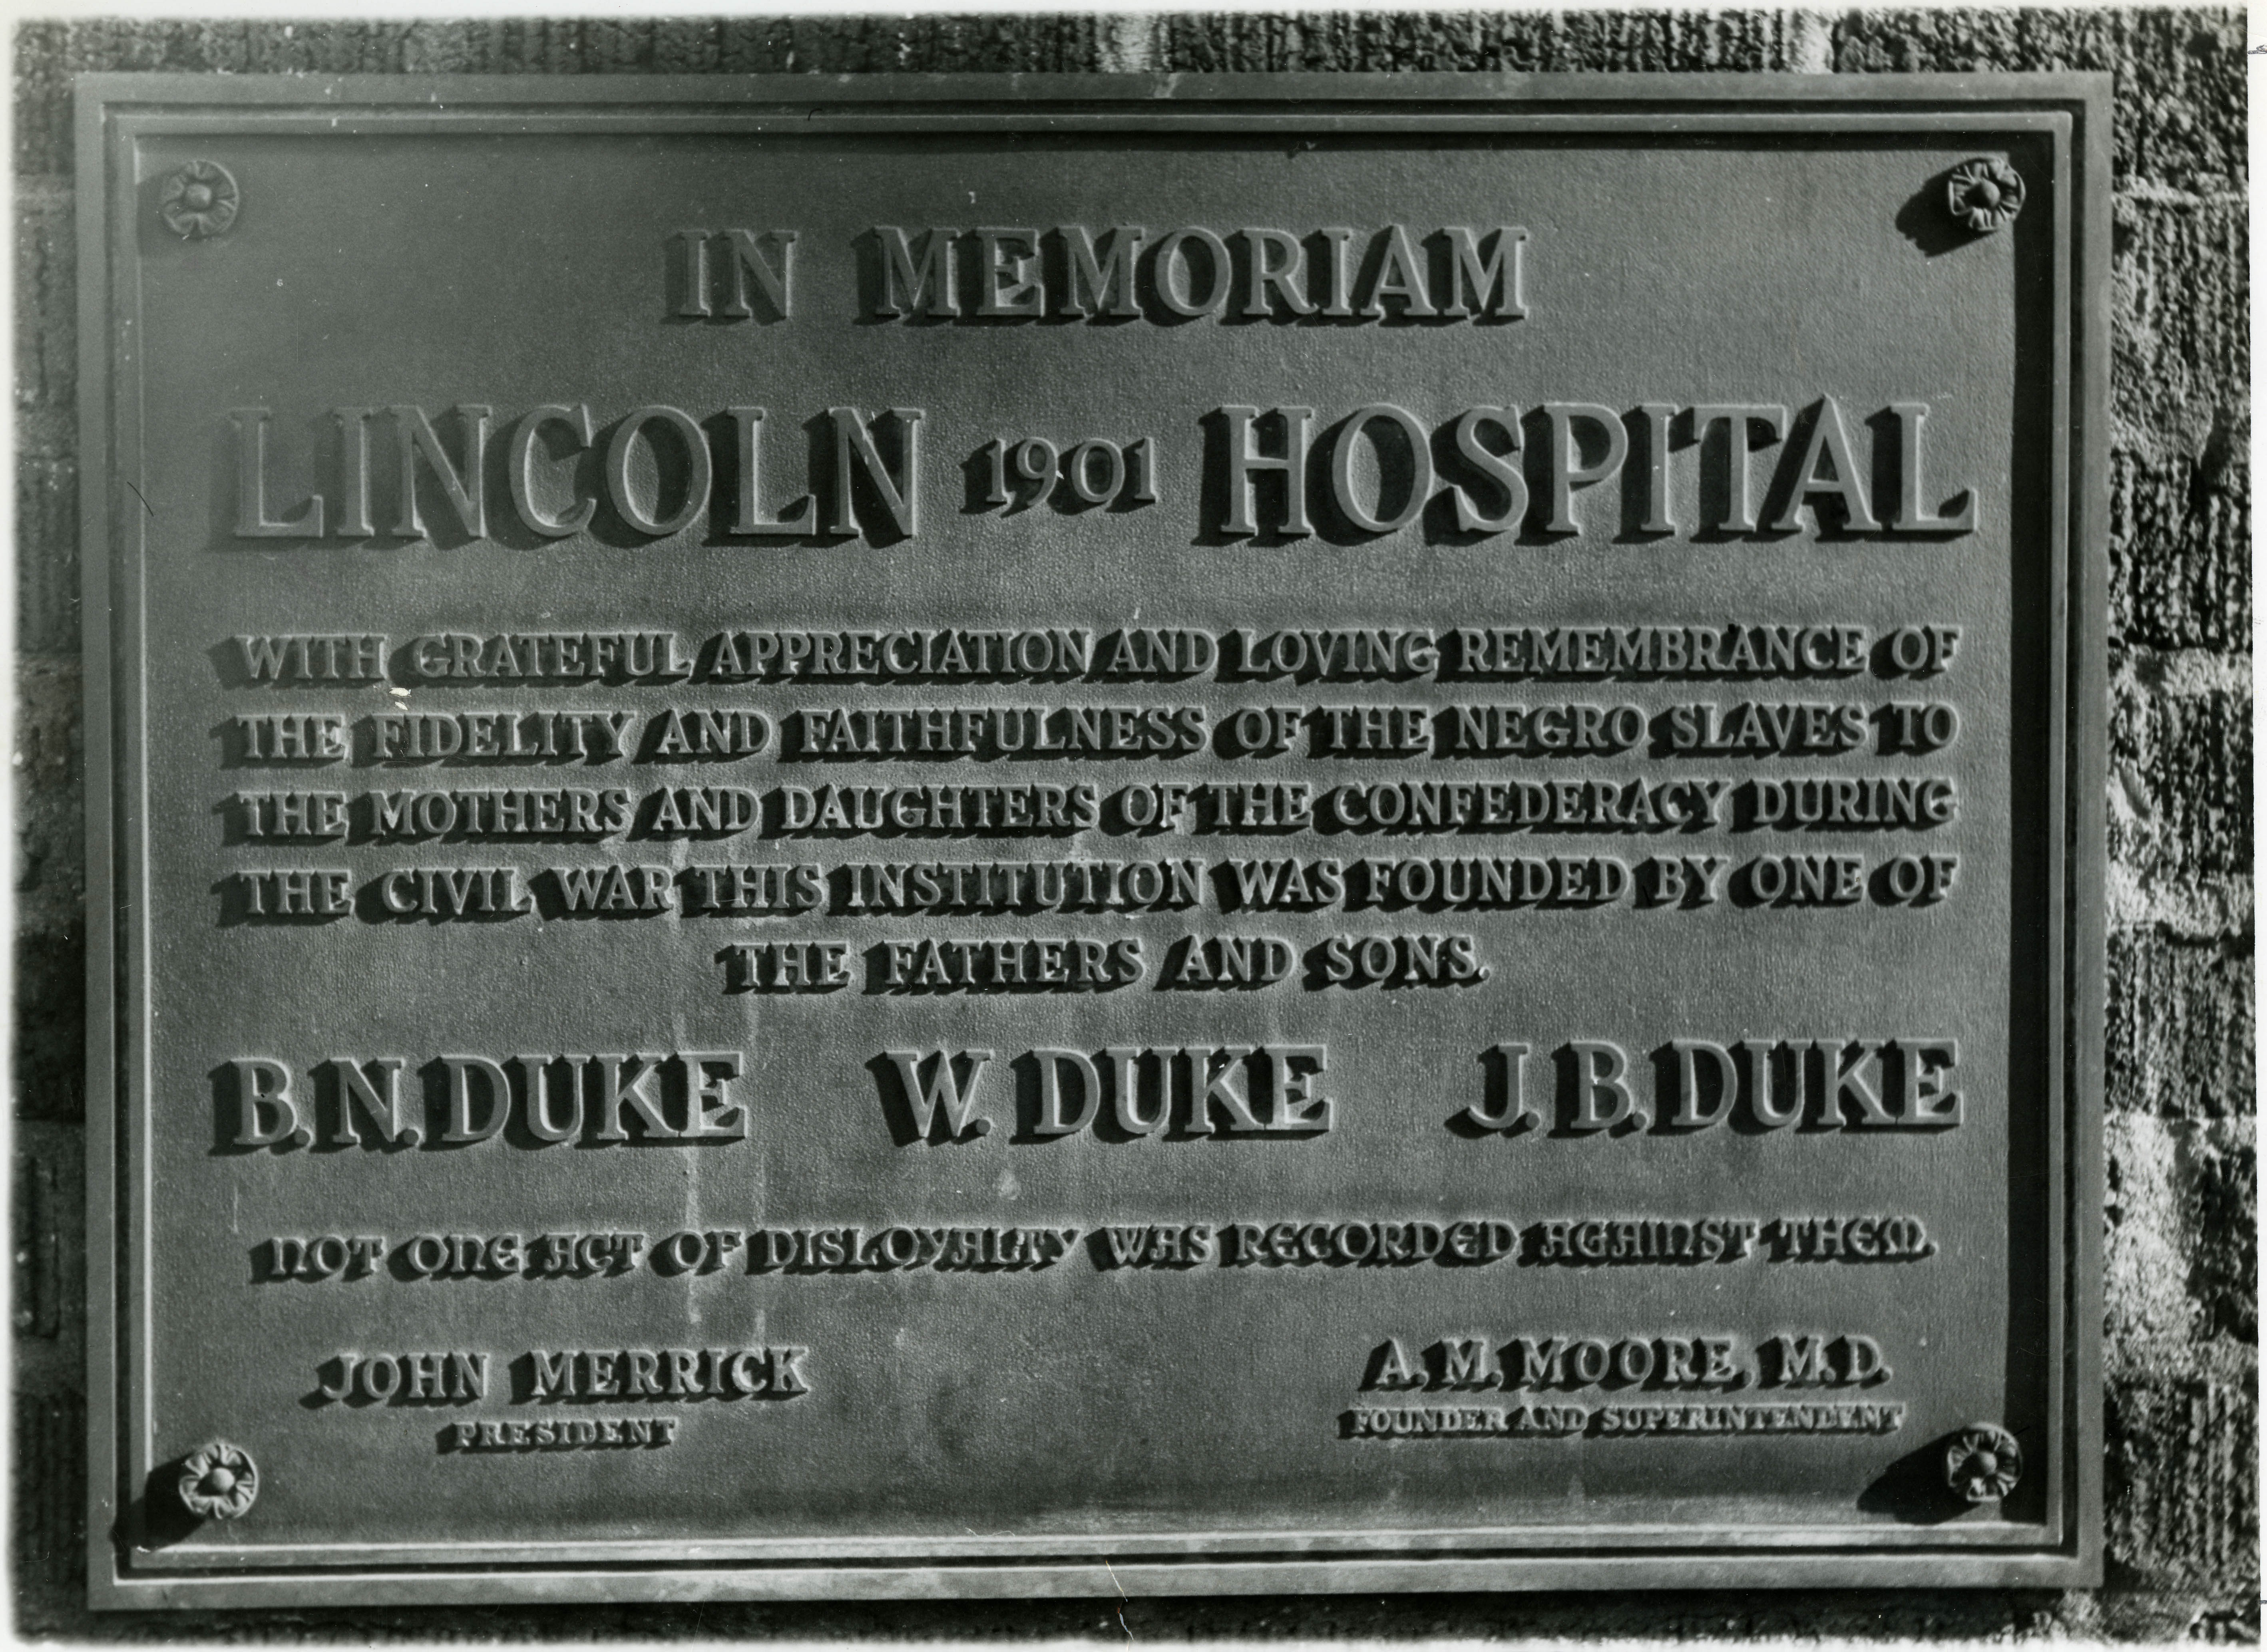 Lincoln Hospital plaque